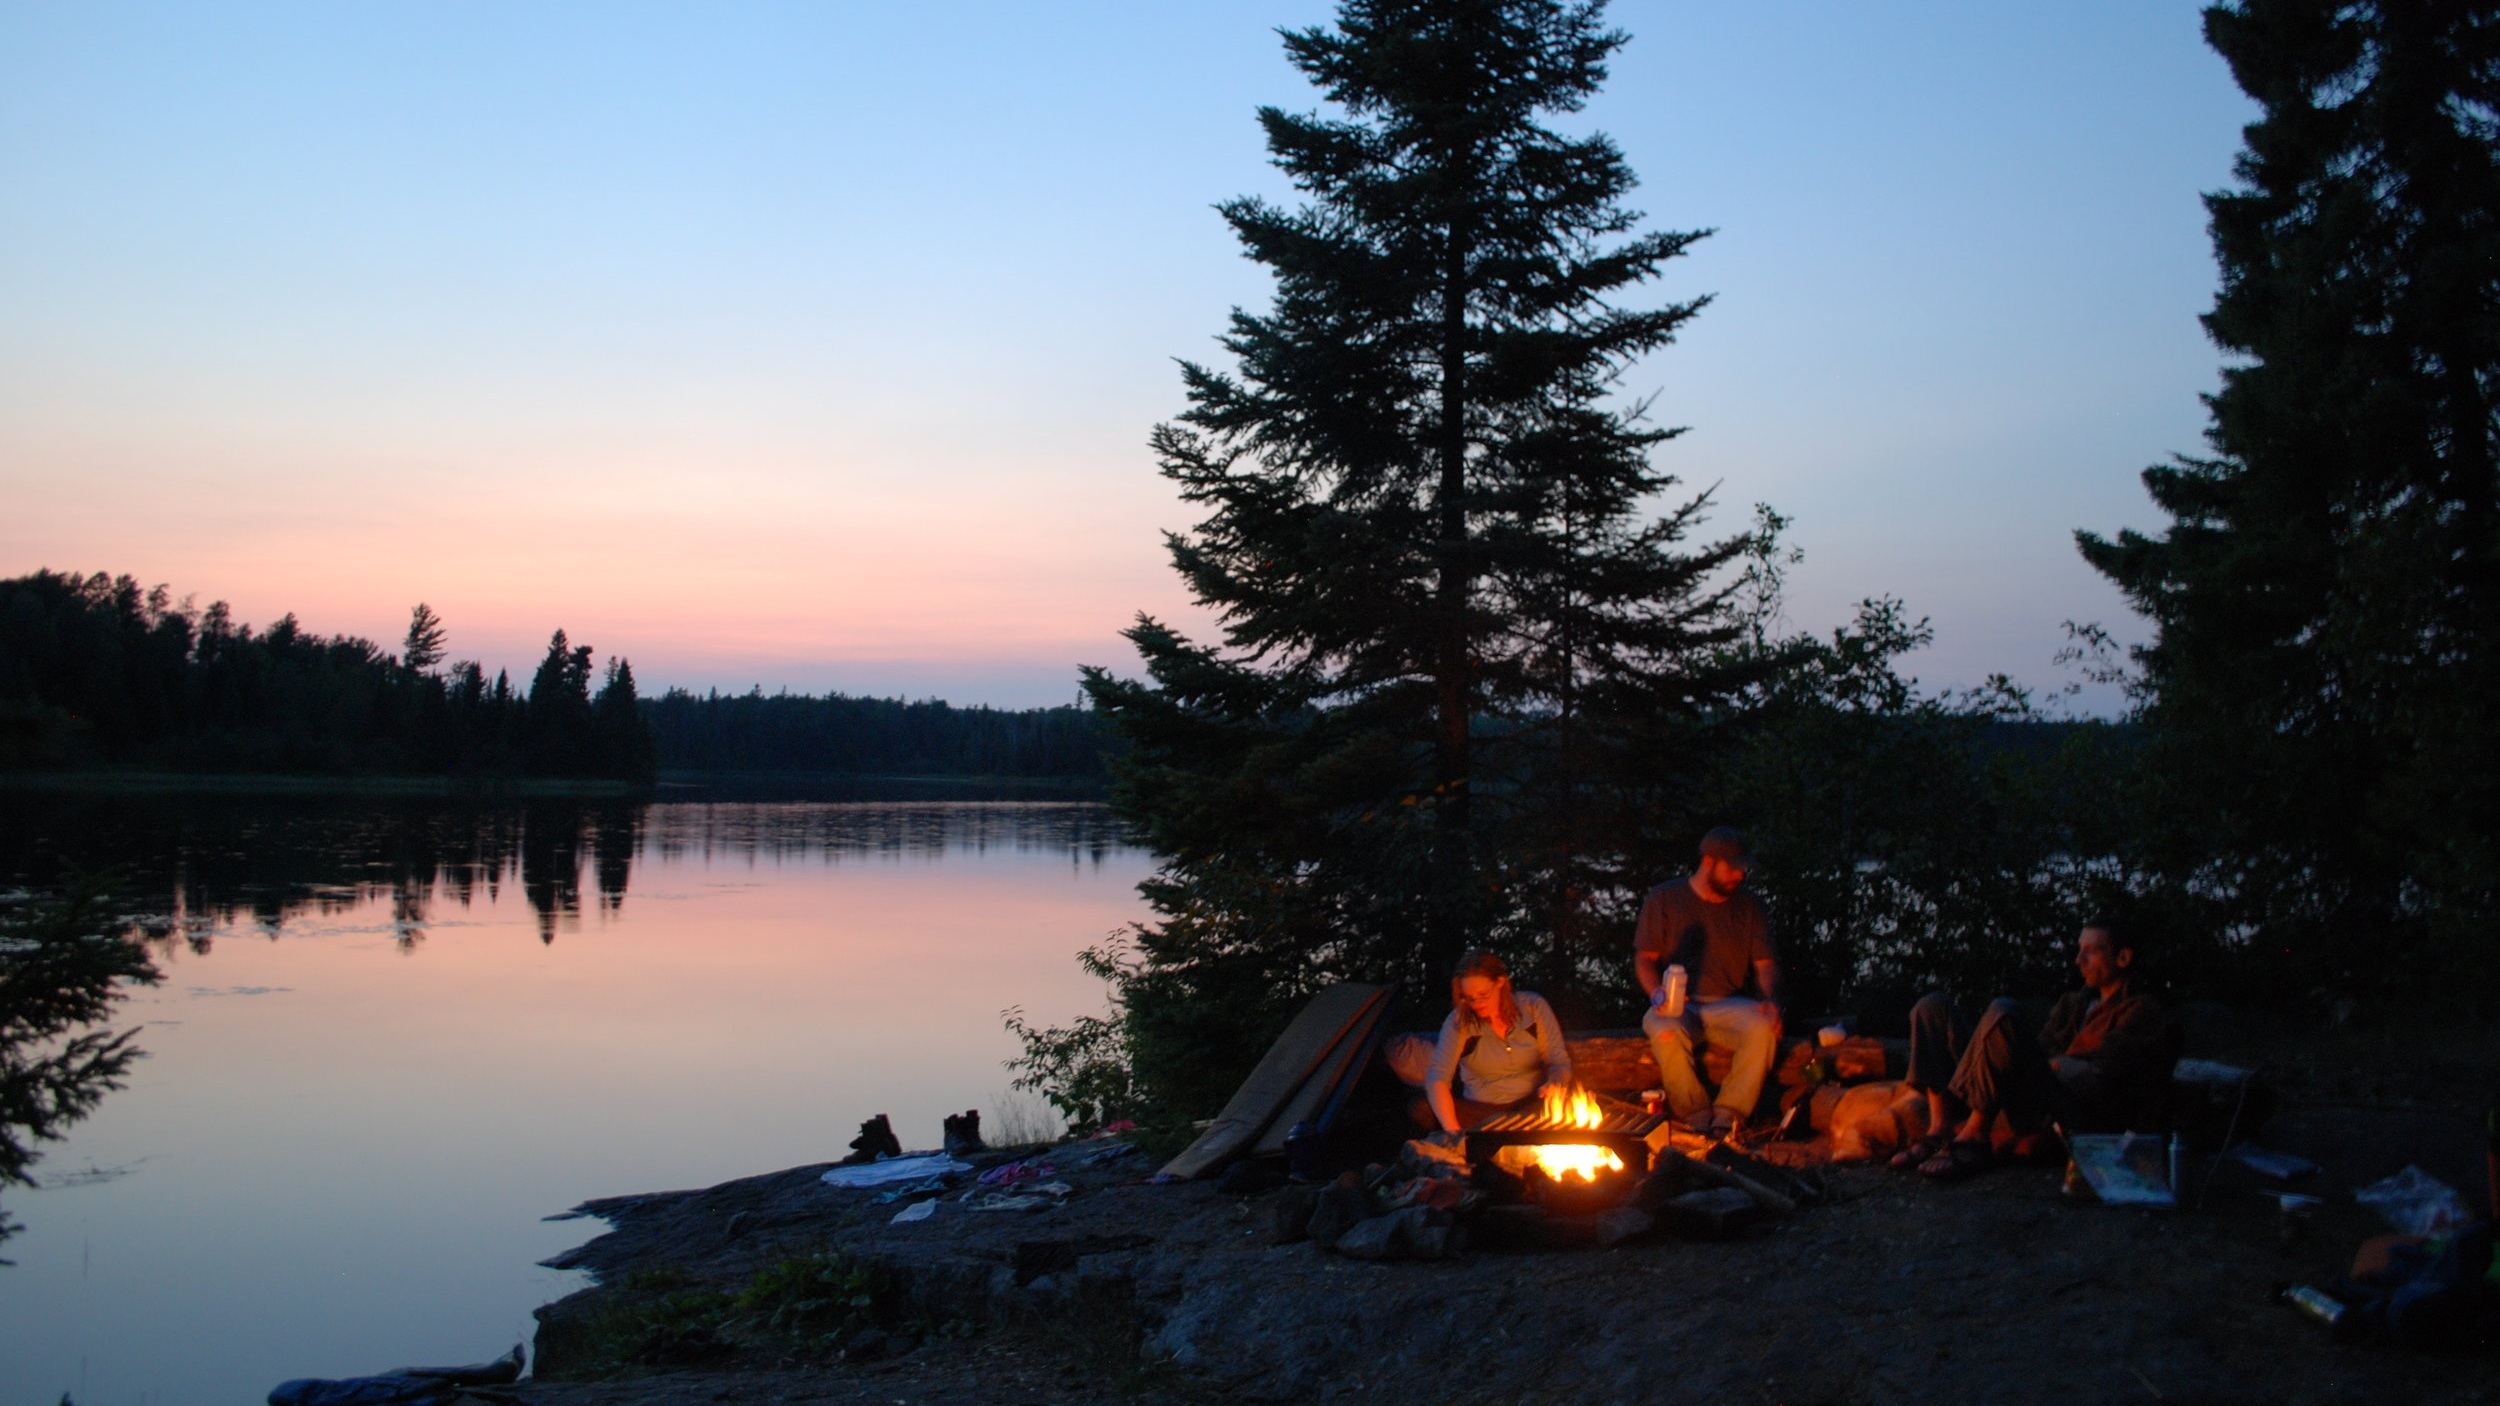 get involved - There are many ways you can give back to the wilderness and be the voice of the BWCAW. Learn about volunteer opportunities, stay informed by signing up for our email list, and more.